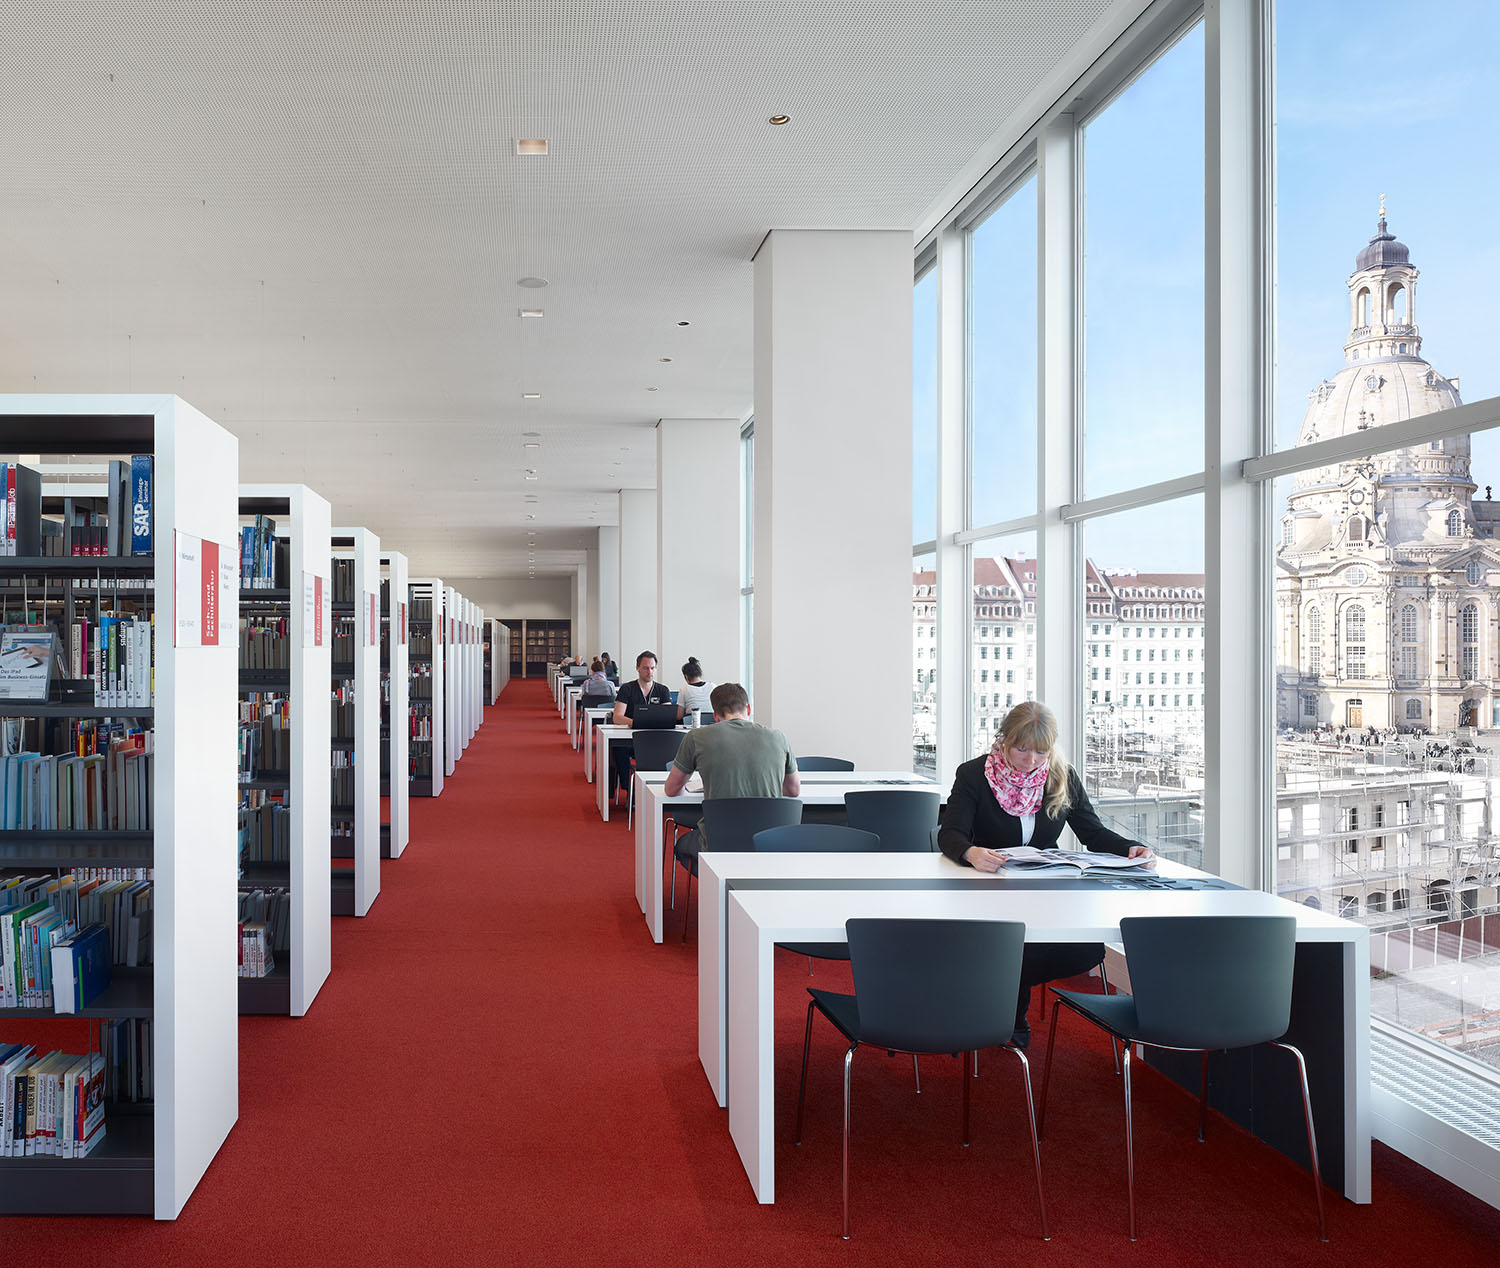 Public library study desks, view on the Frauenkirche (Church of Our Lady) Christian Gahl